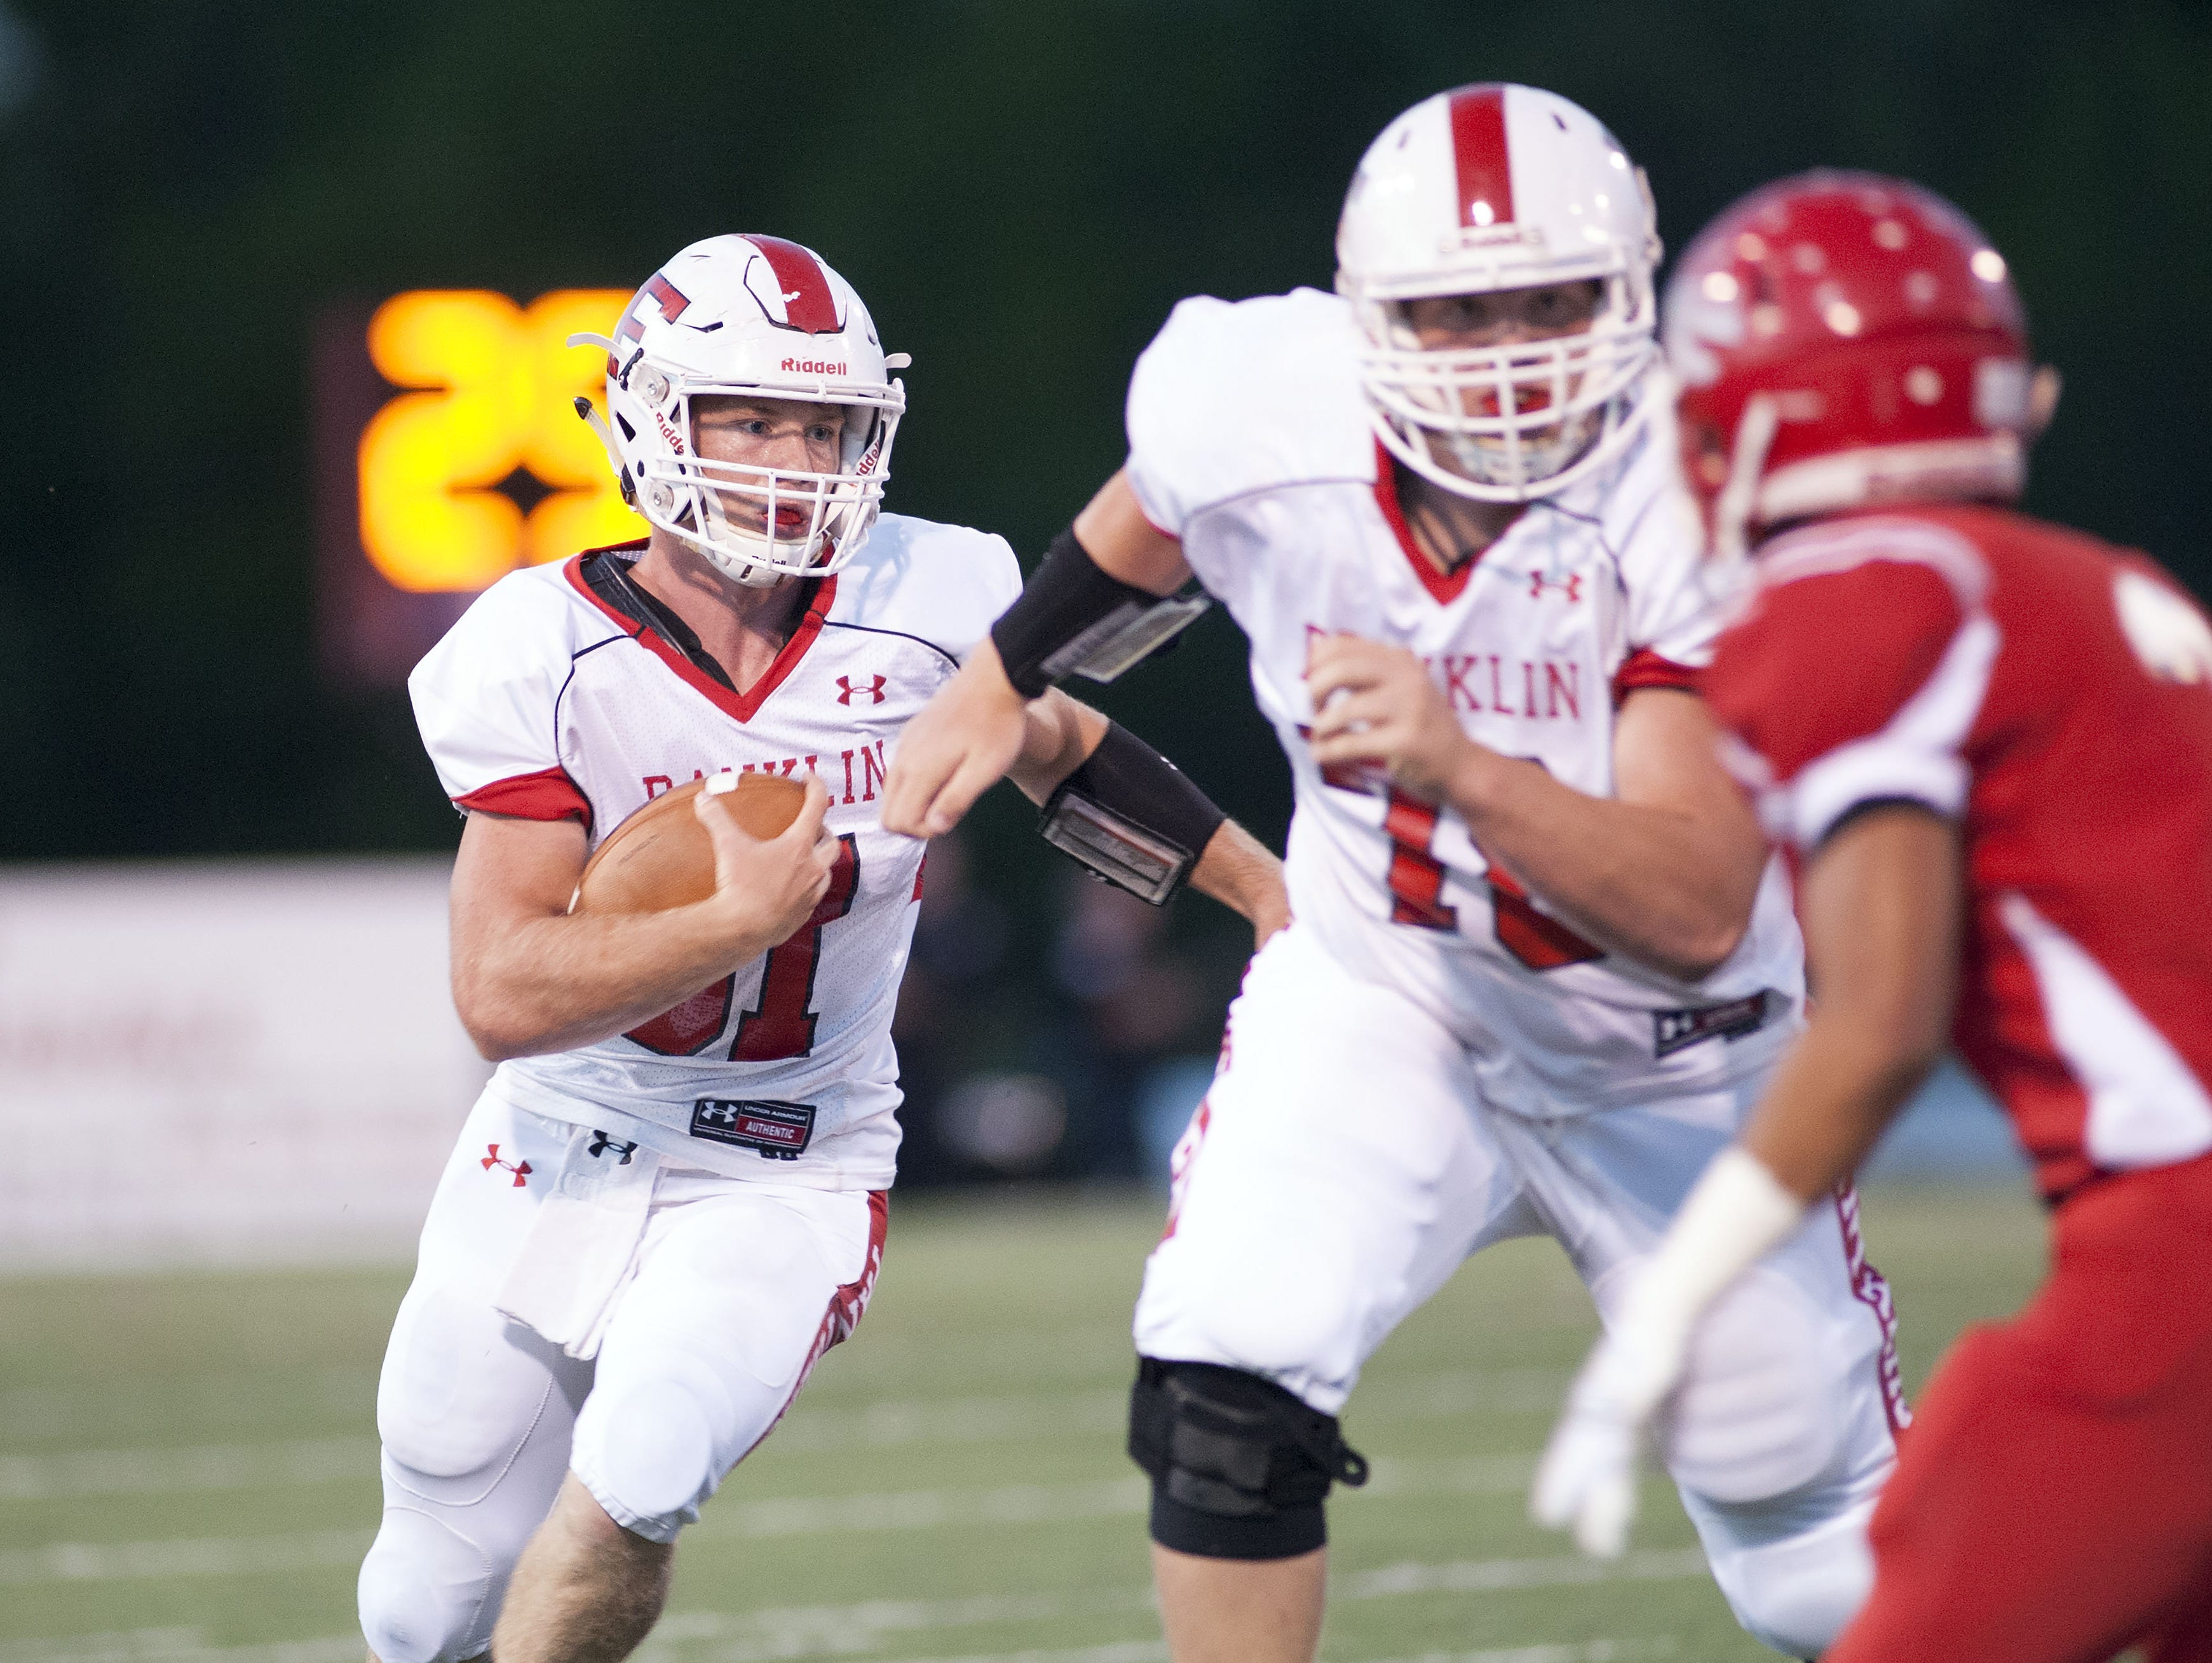 Kelton Lowry, left, rushed for more than 2,000 yards behind an offensive line led by Wyatt Burnette.